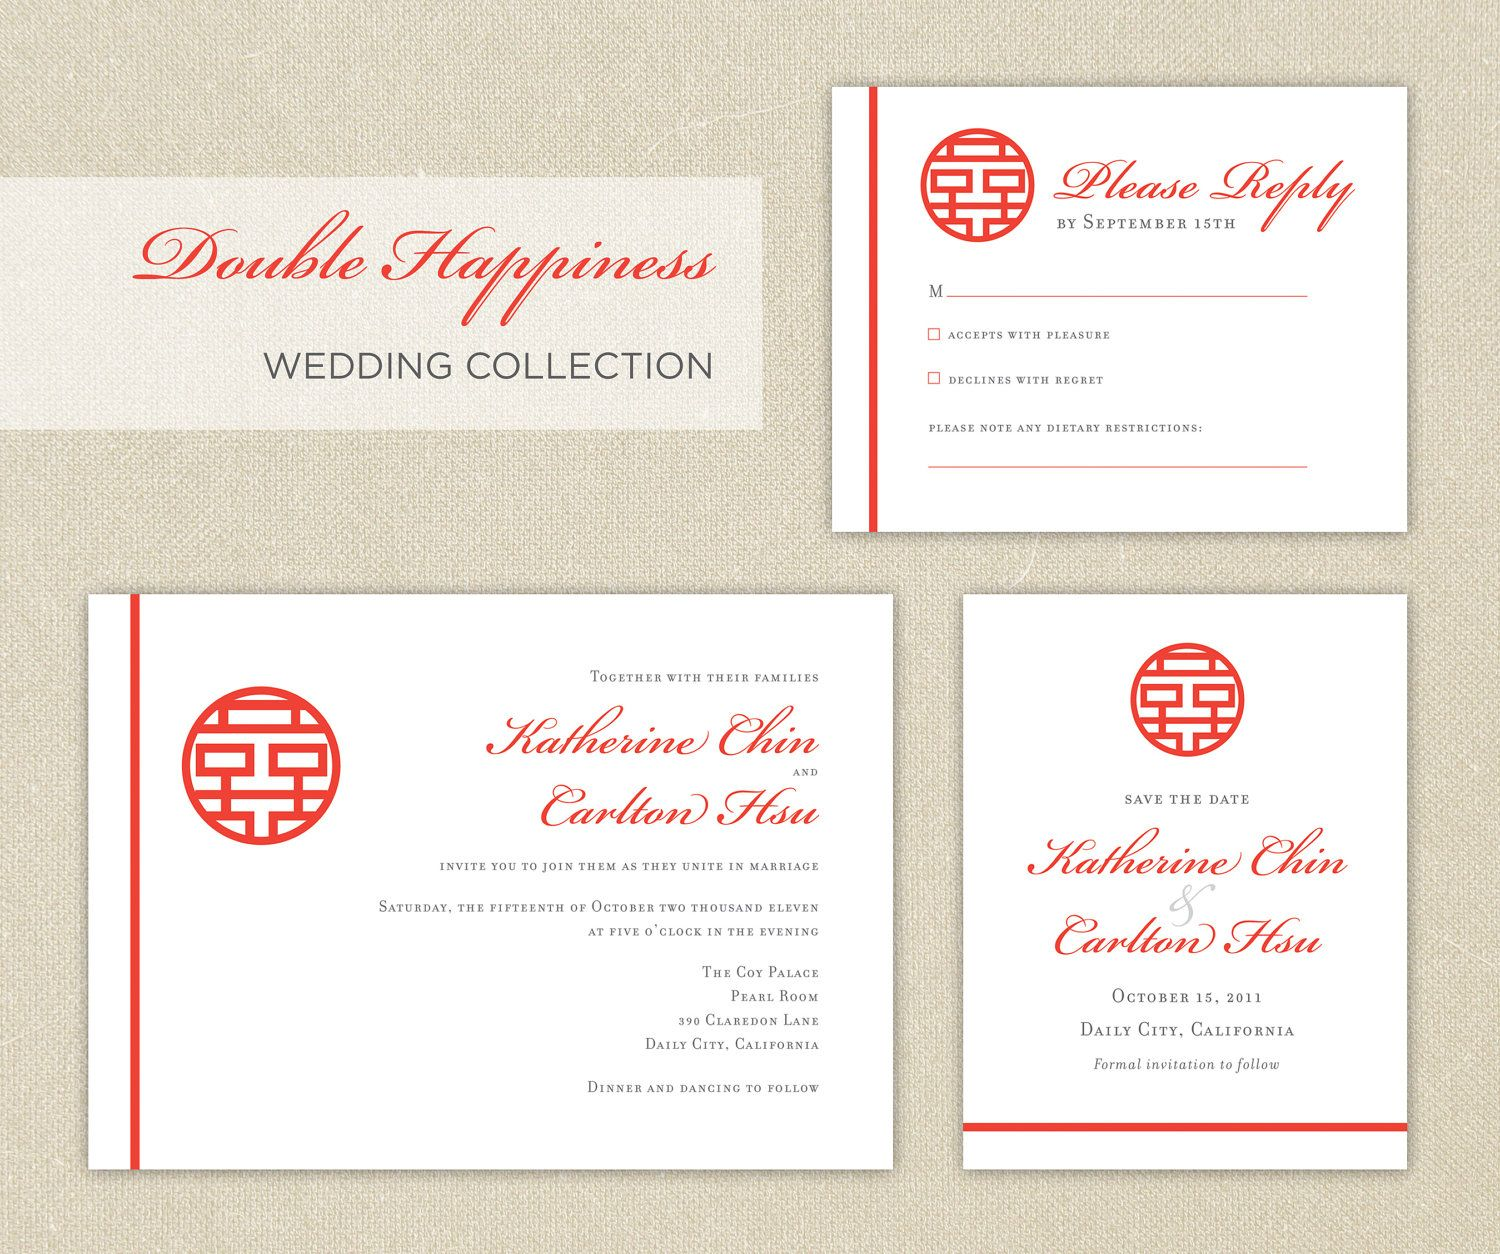 Wedding Invitations Red Double Happiness Chinese Wedding